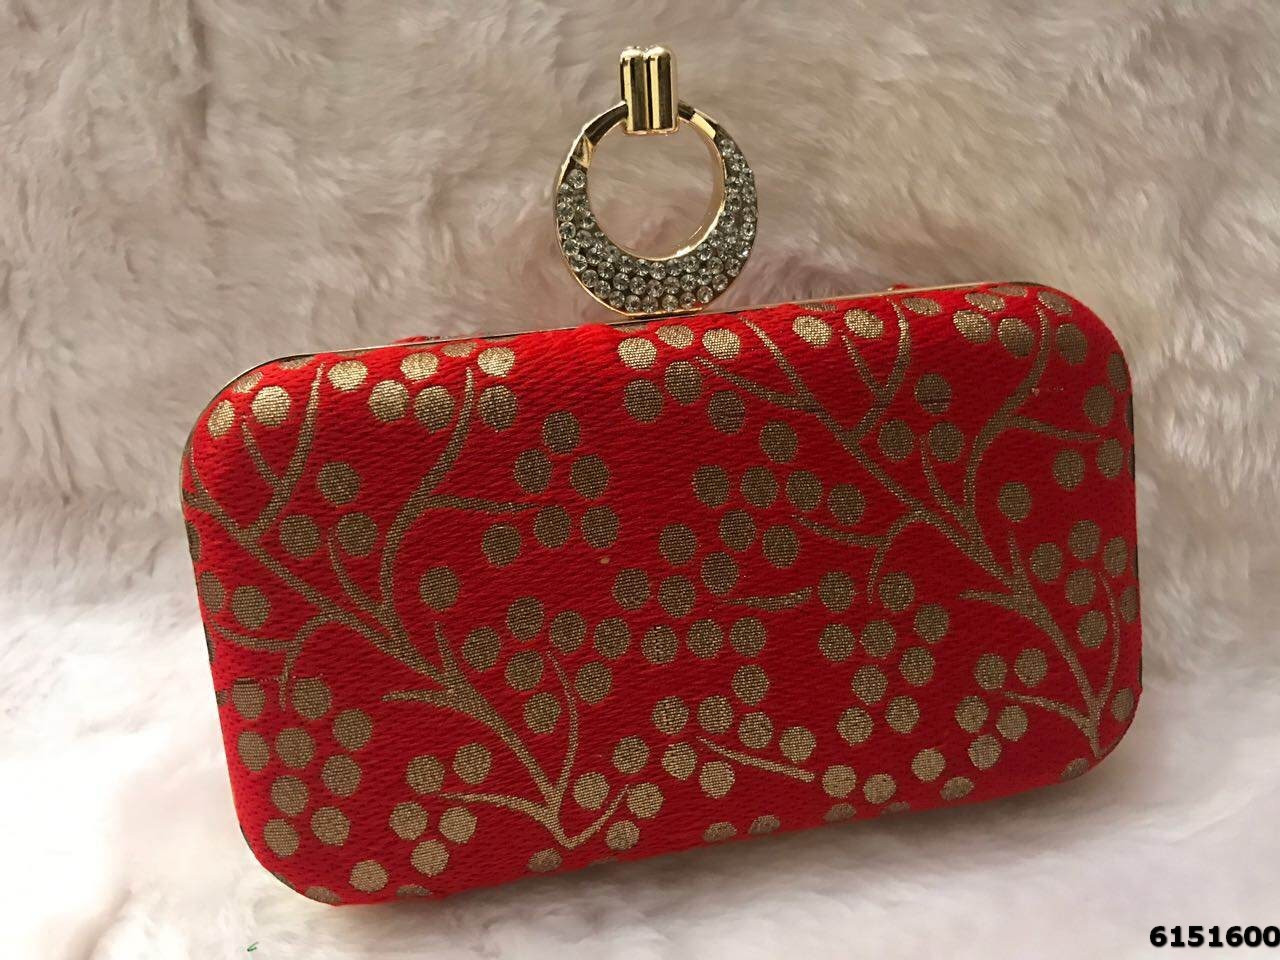 Traditional Embroidered Box Clutch